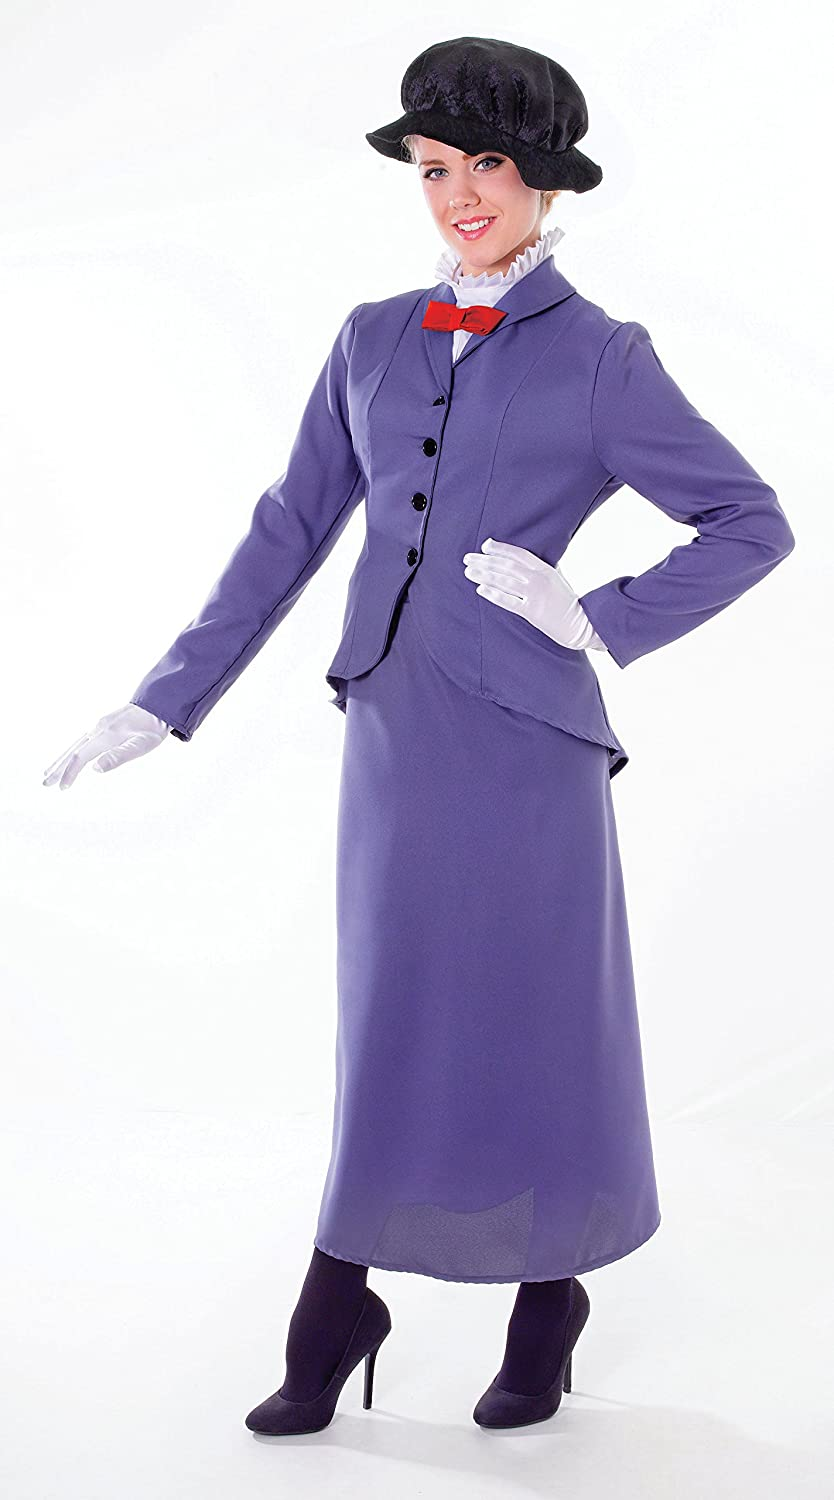 f7d138e19 Ladies Nanny Costume for Victorian Edwardian Poppins Fancy Dress ...